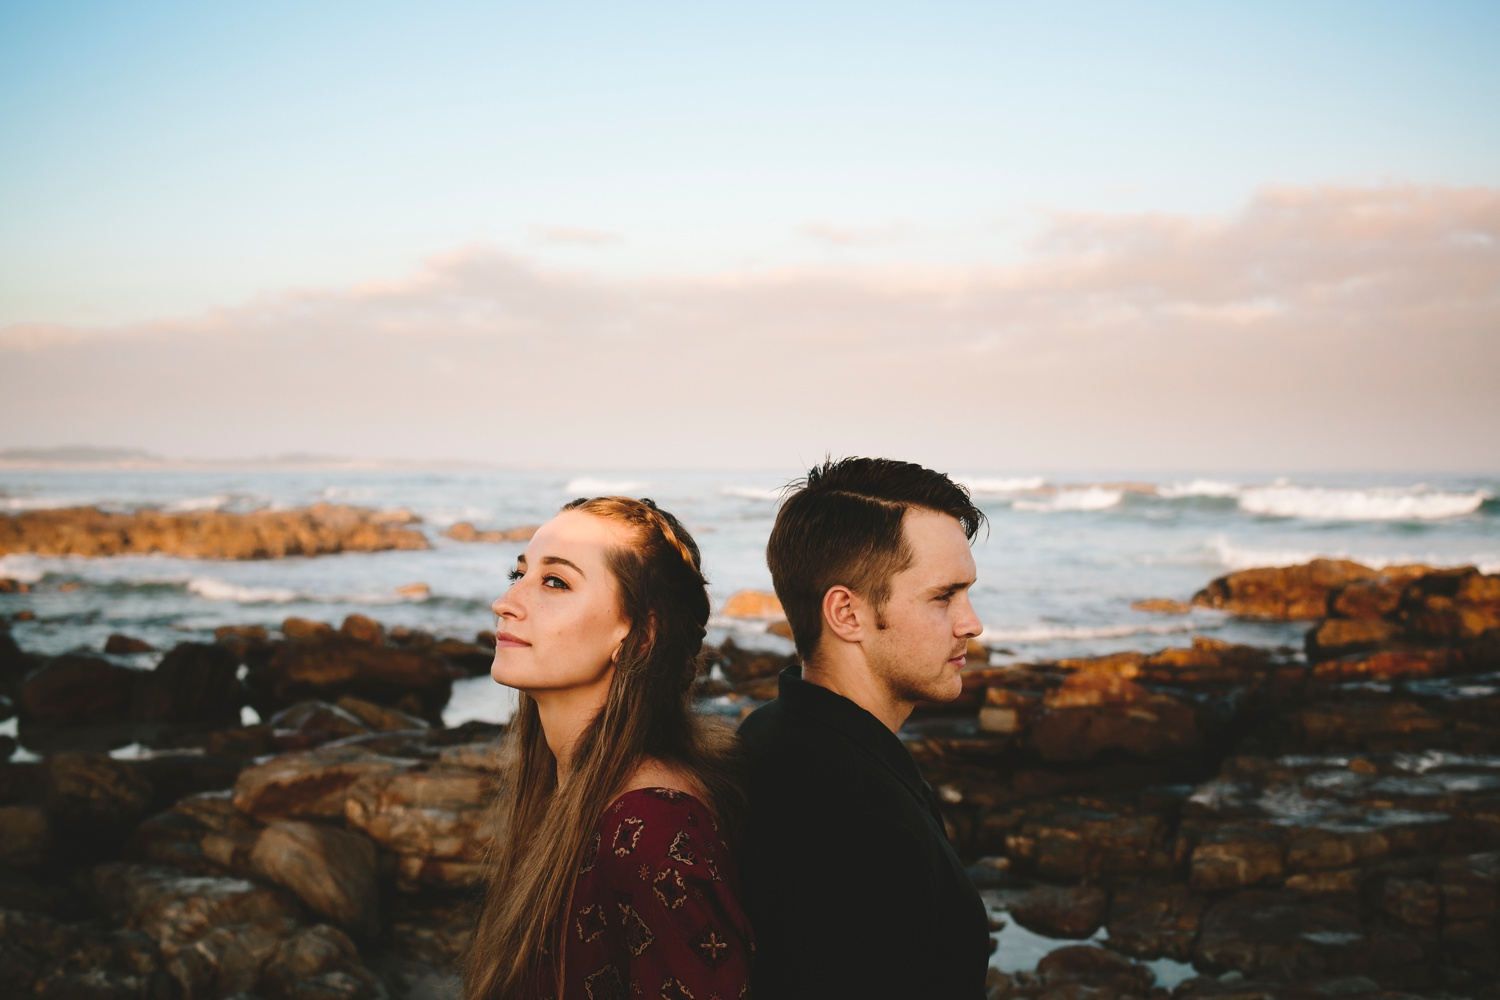 Marie&Andre-CharlieRay-st-francis-cape-ocean-wild-side-couple_0536.jpg